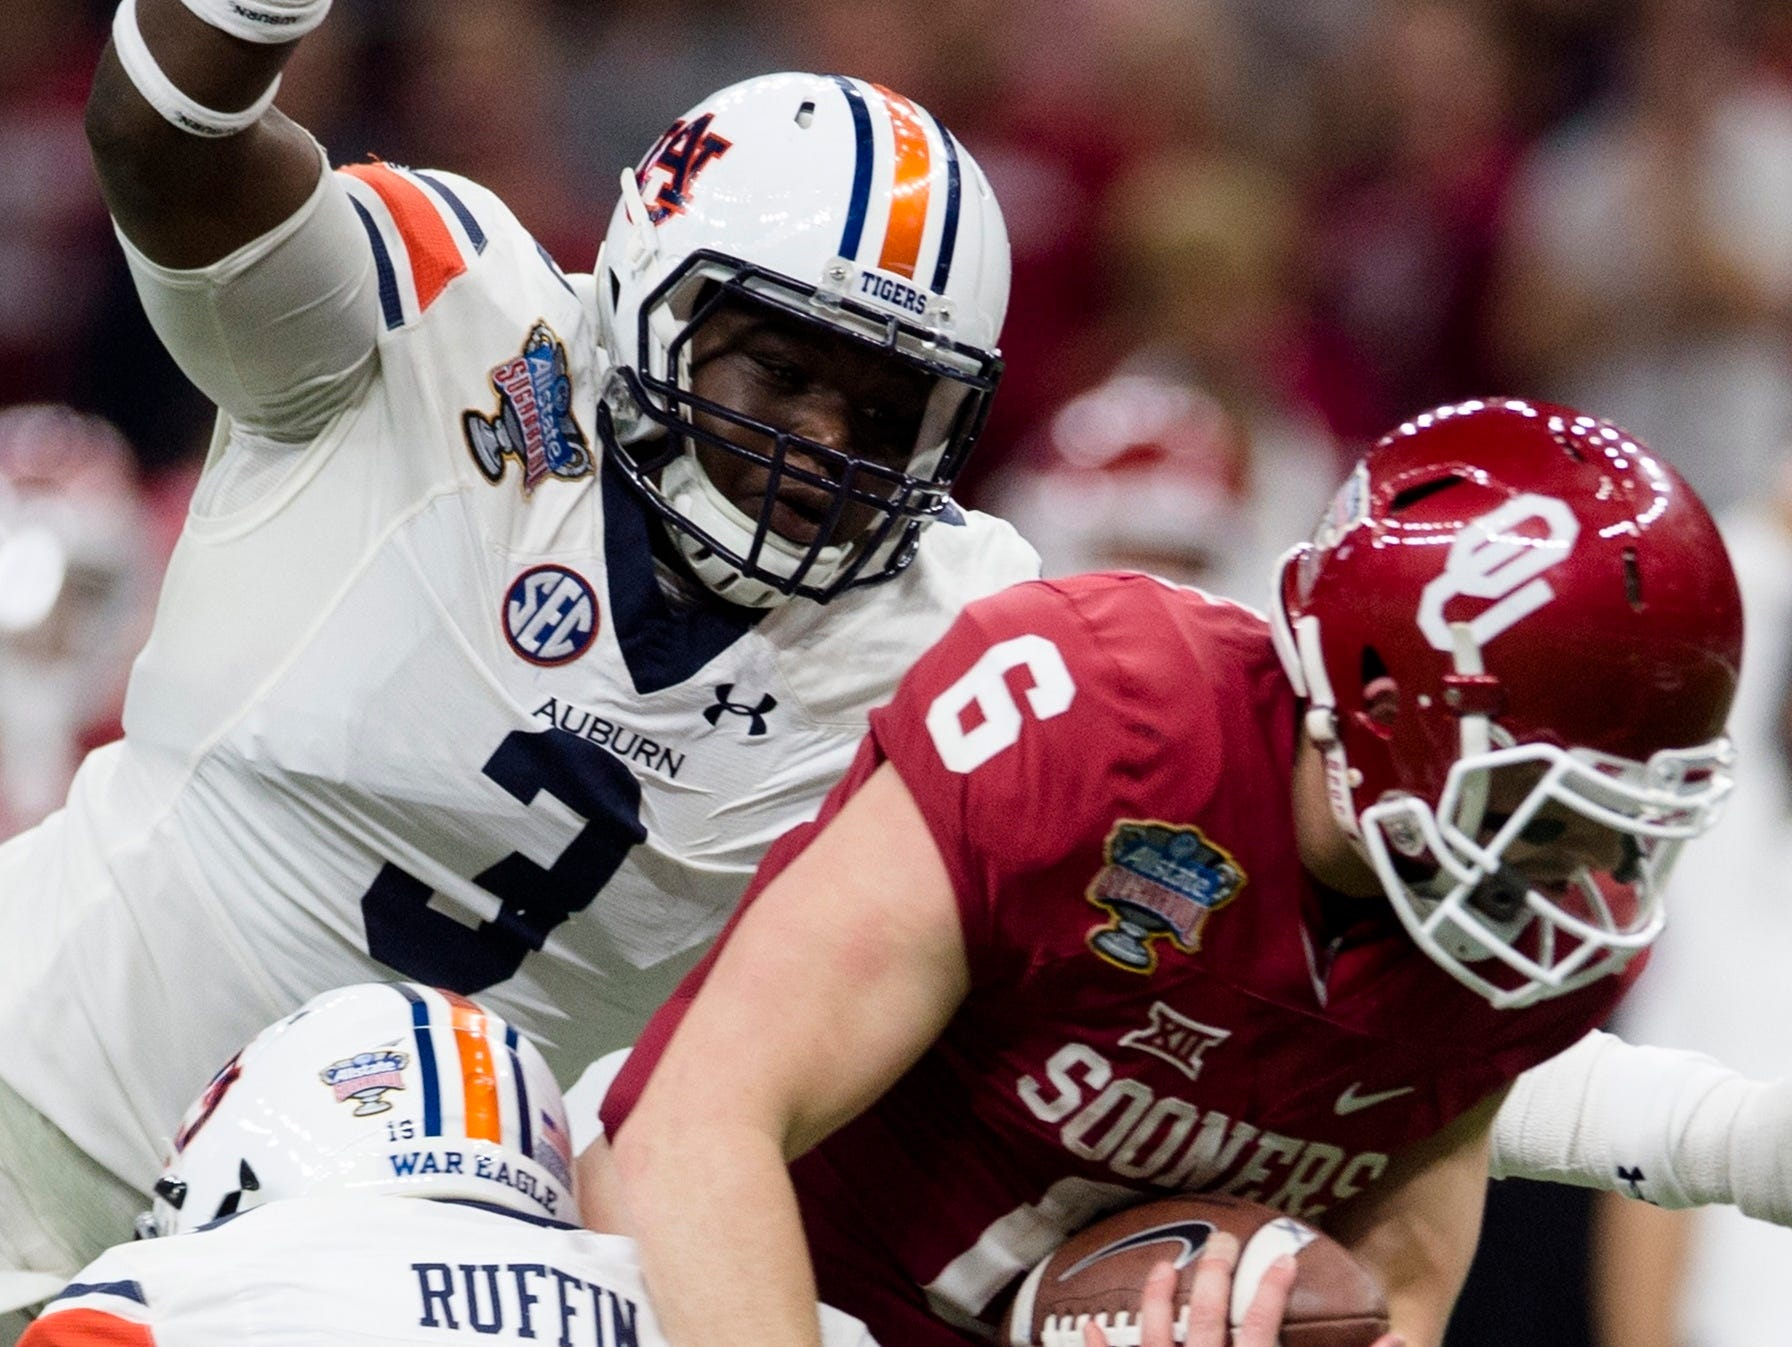 Auburn defensive back Nick Ruffin (19) and Auburn defensive lineman Marlon Davidson (3) tackles Oklahoma quarterback Baker Mayfield (6), but Auburn lost the Sugar Bowl to Oklahoma.